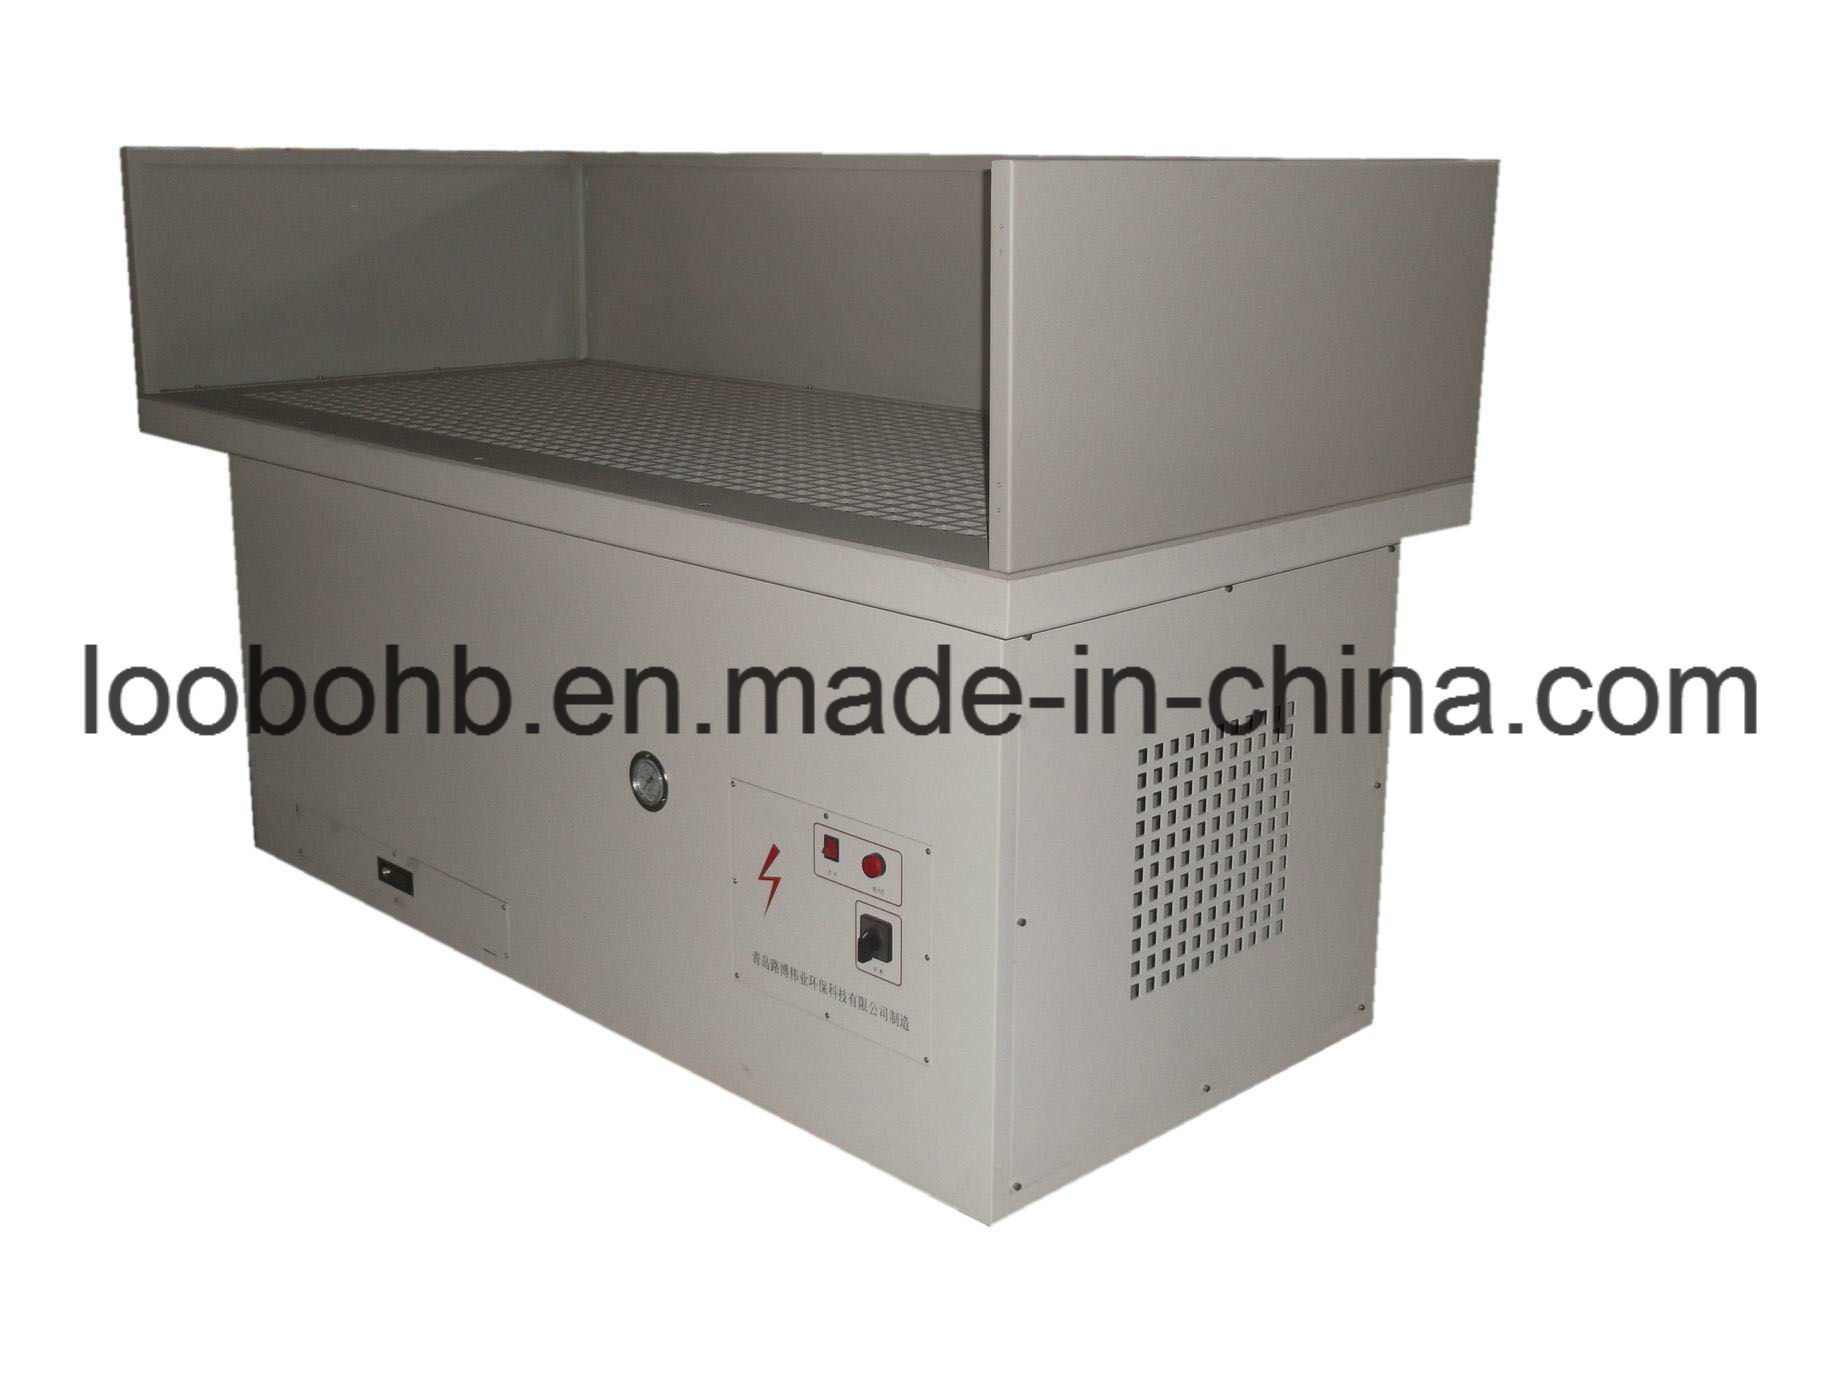 Downdraft Tables and Dust Collection System for Sanding/Grinding/Poling Dust